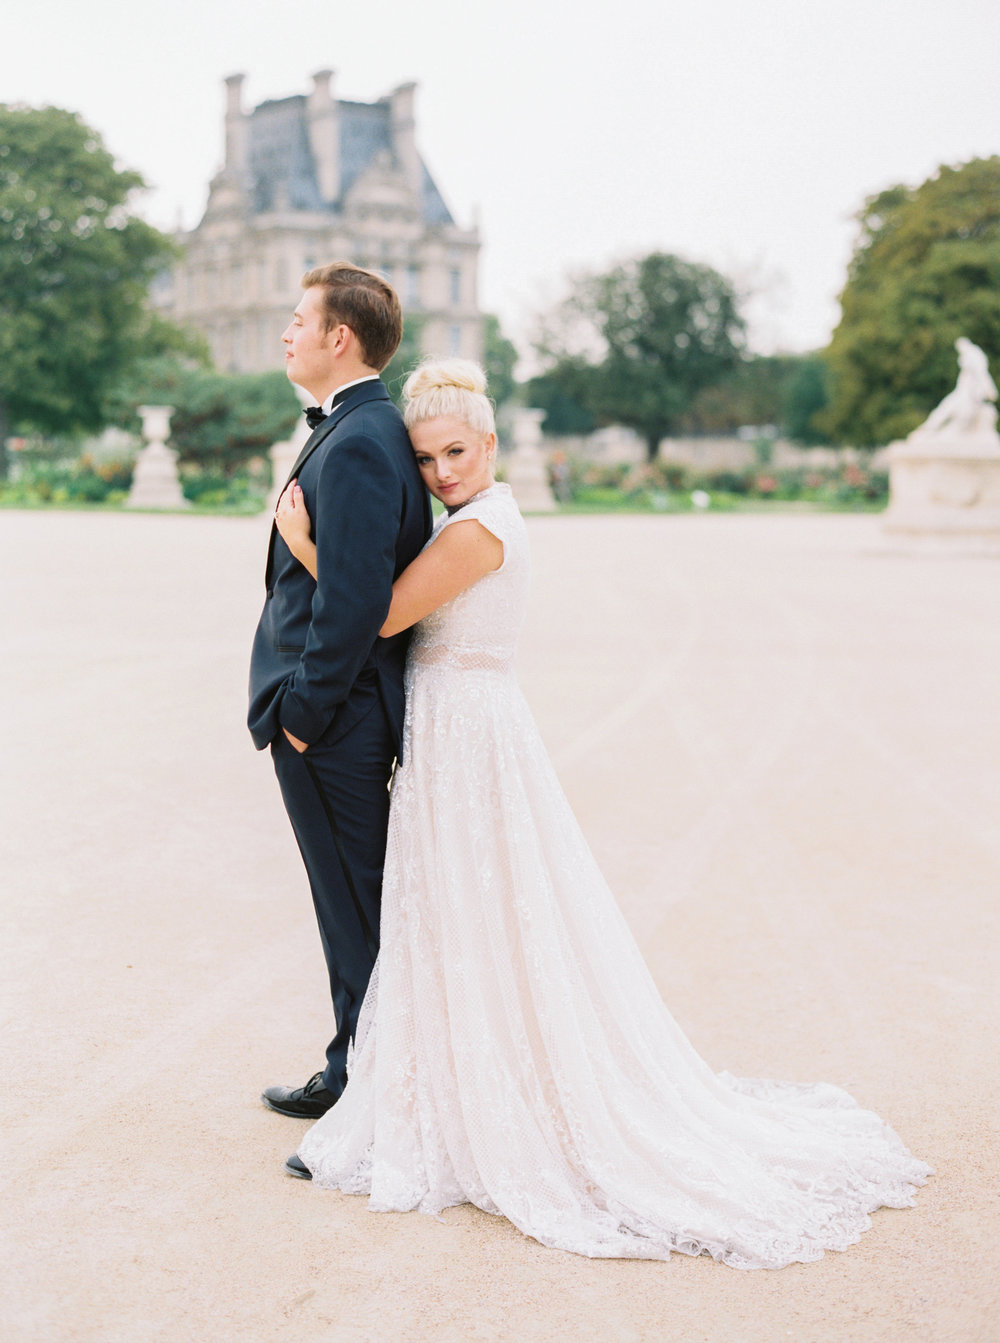 Rachael and Cameron - Paris, France (real bride)